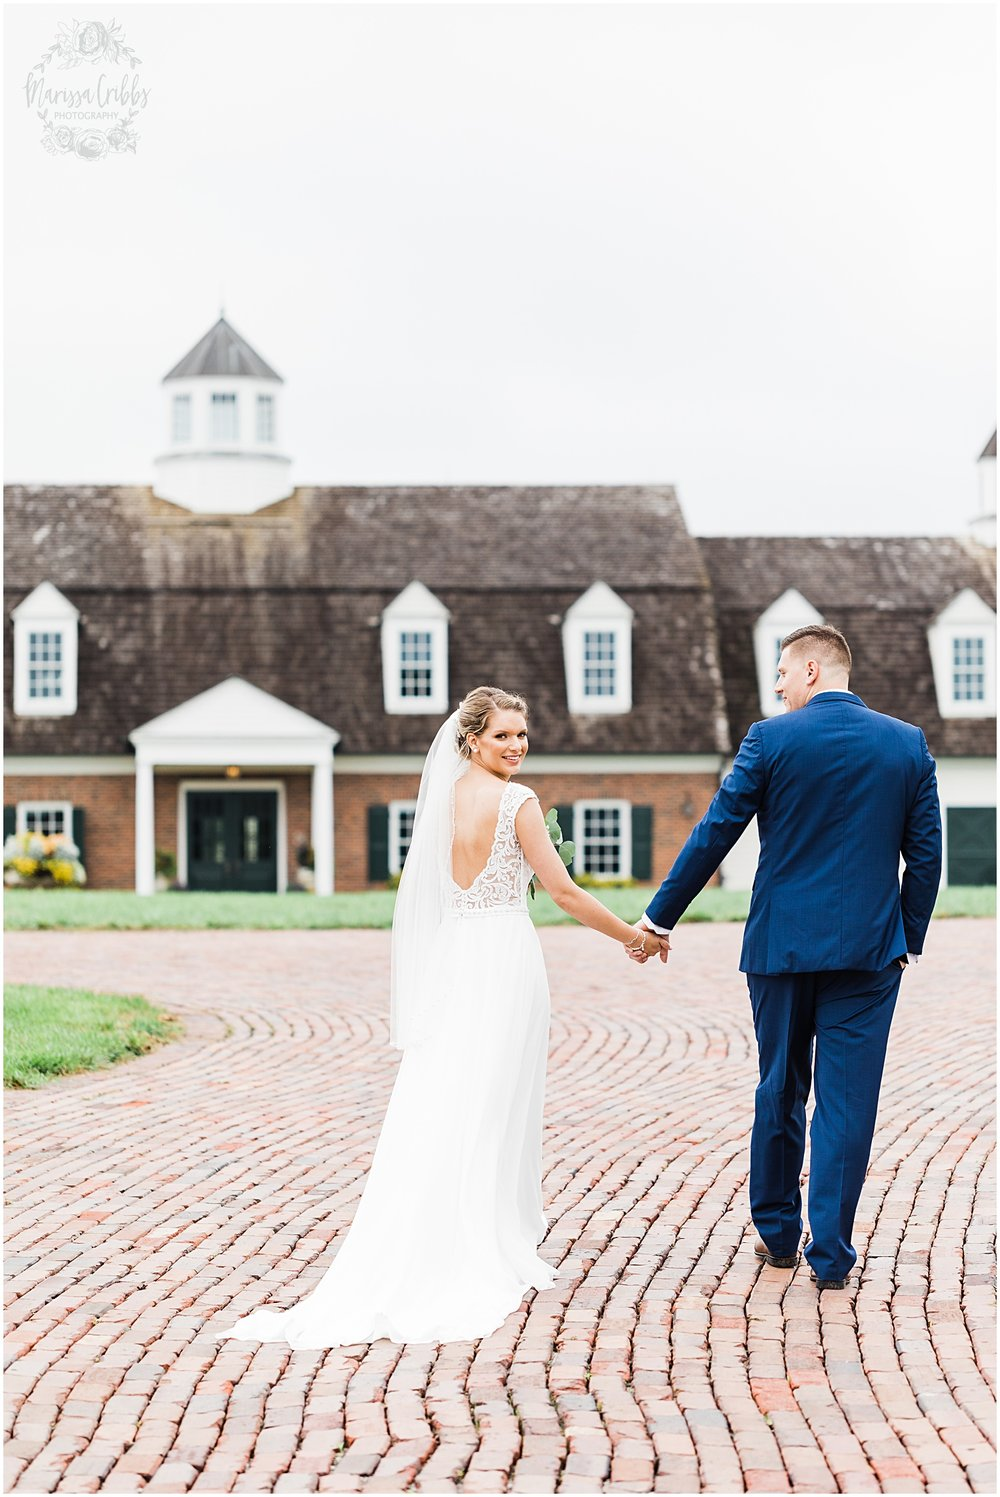 ROUNKLES WEDDING | MARISSA CRIBBS PHOTOGRAPHY | MILDALE FARM_6129.jpg